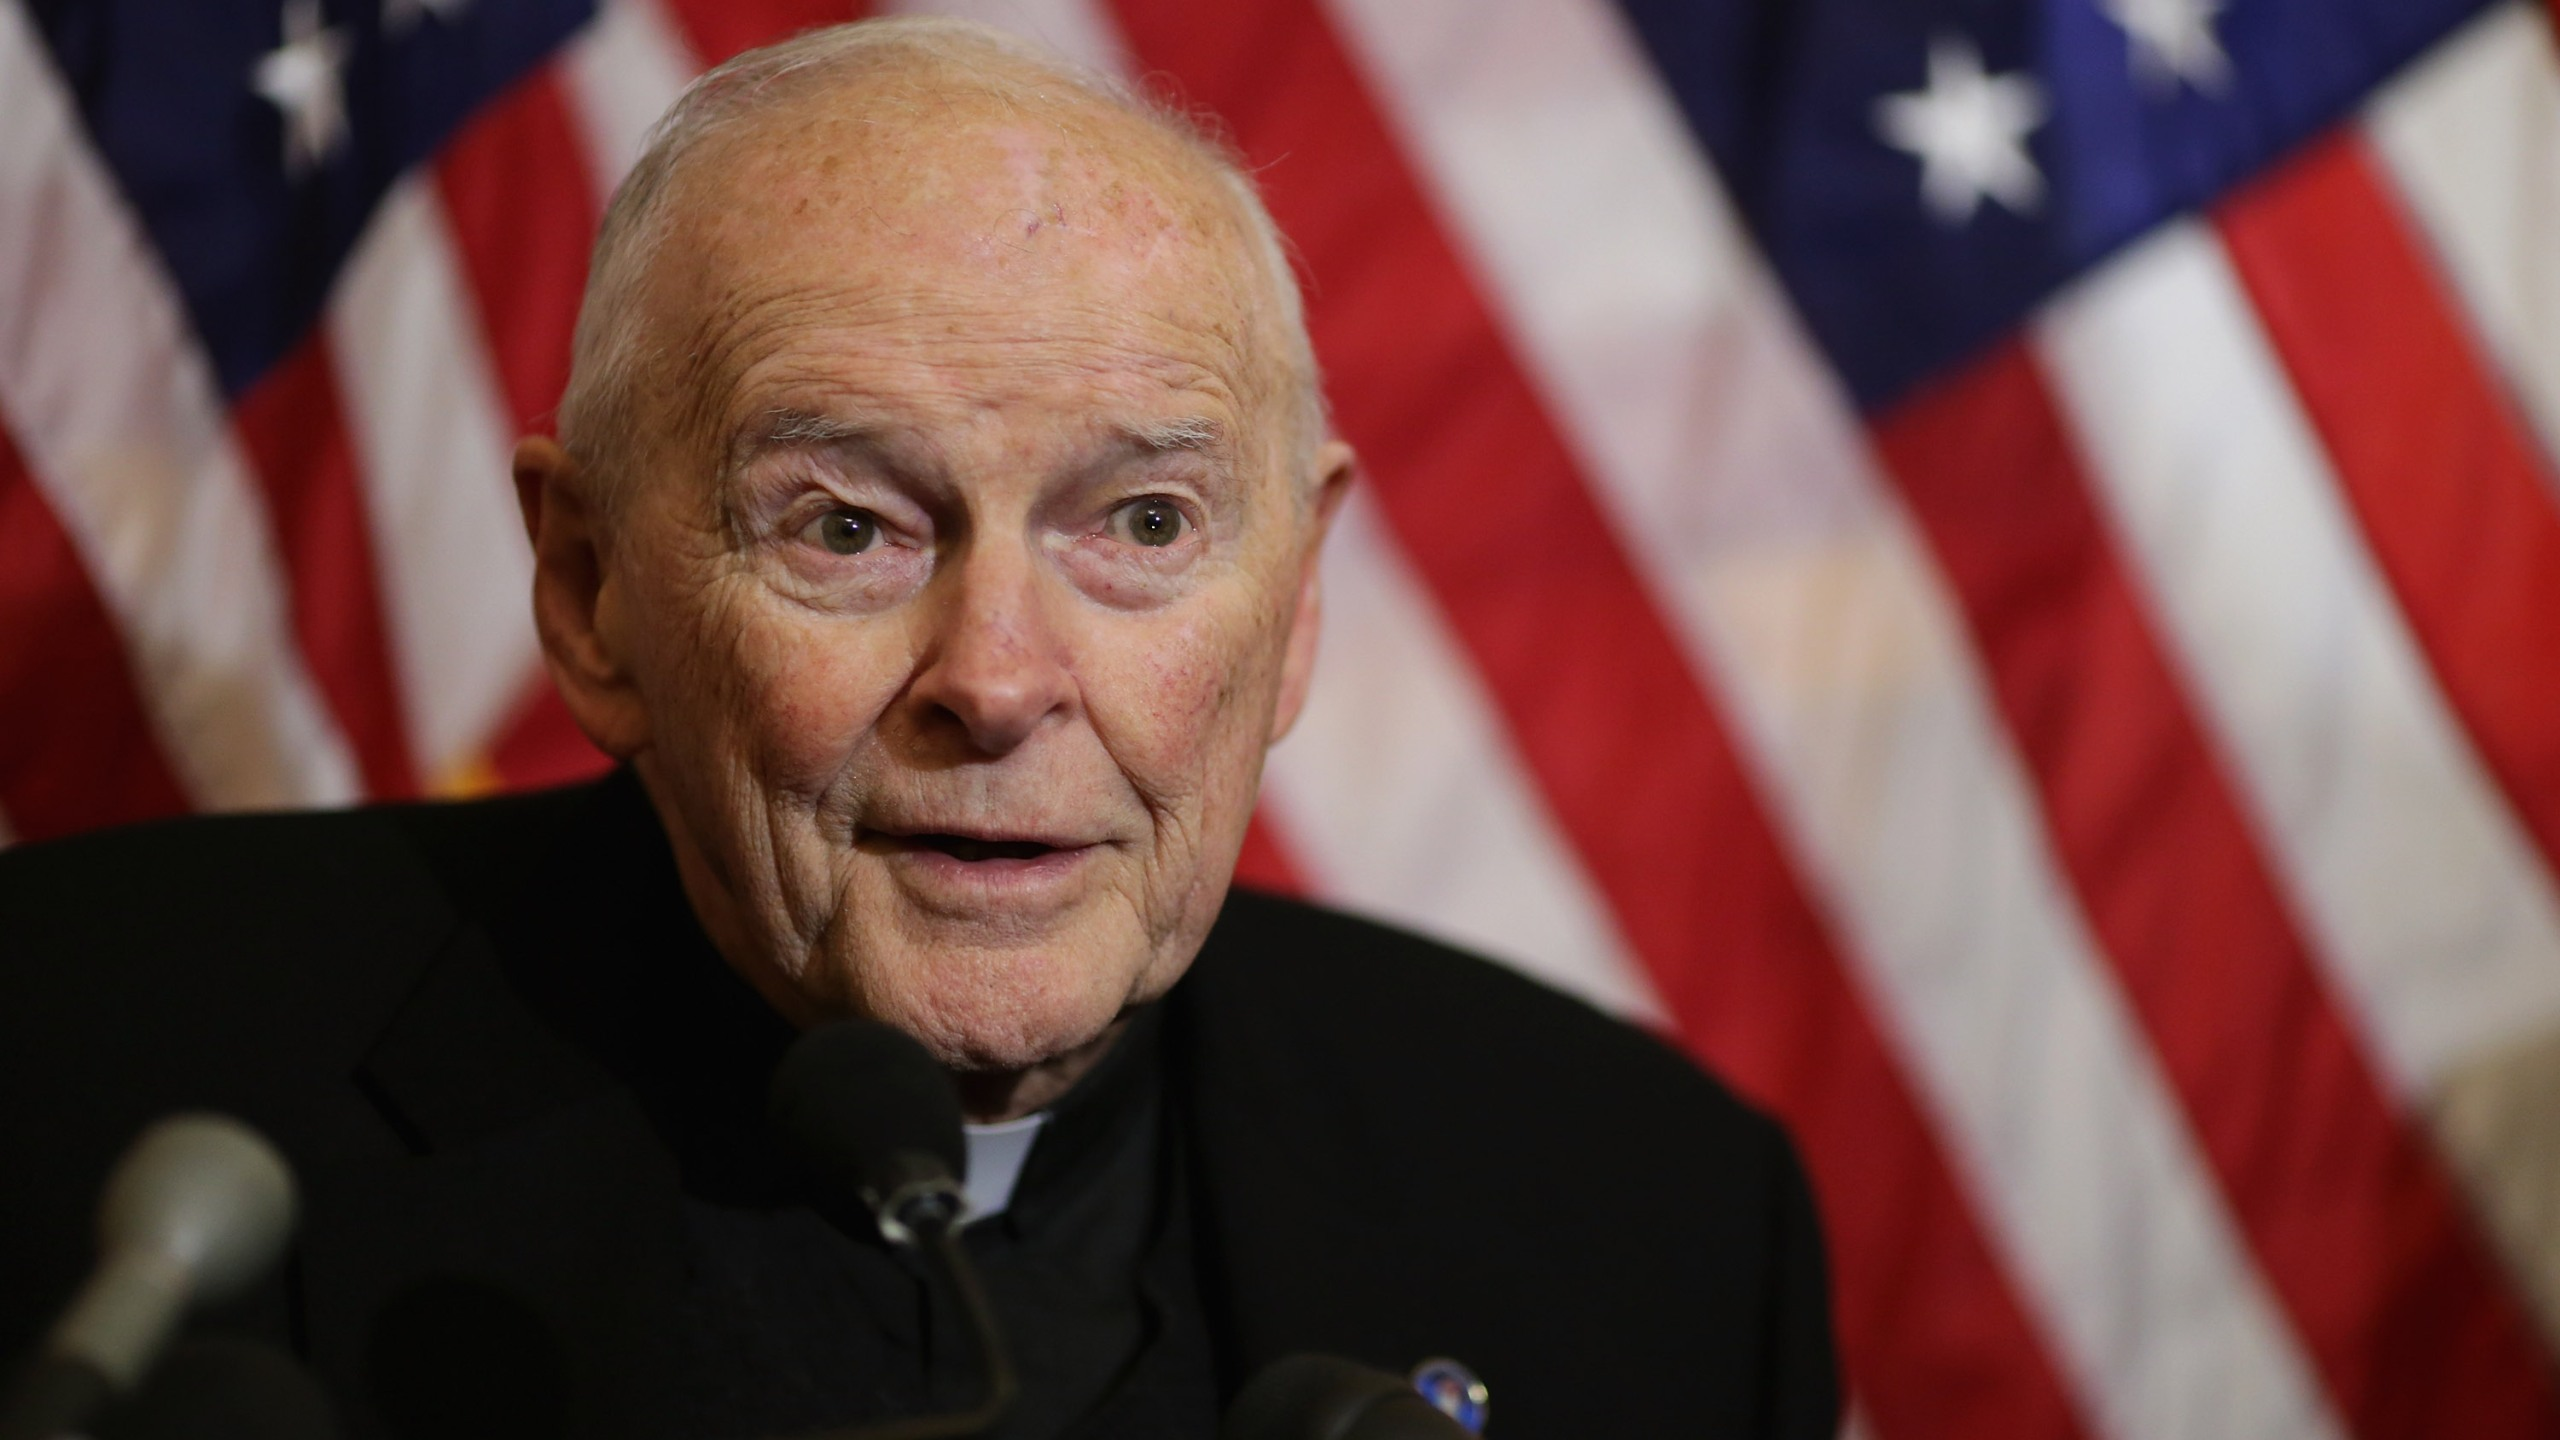 Cardinal Theodore McCarrick of Washington resigns after altar boy sex abuseallegation